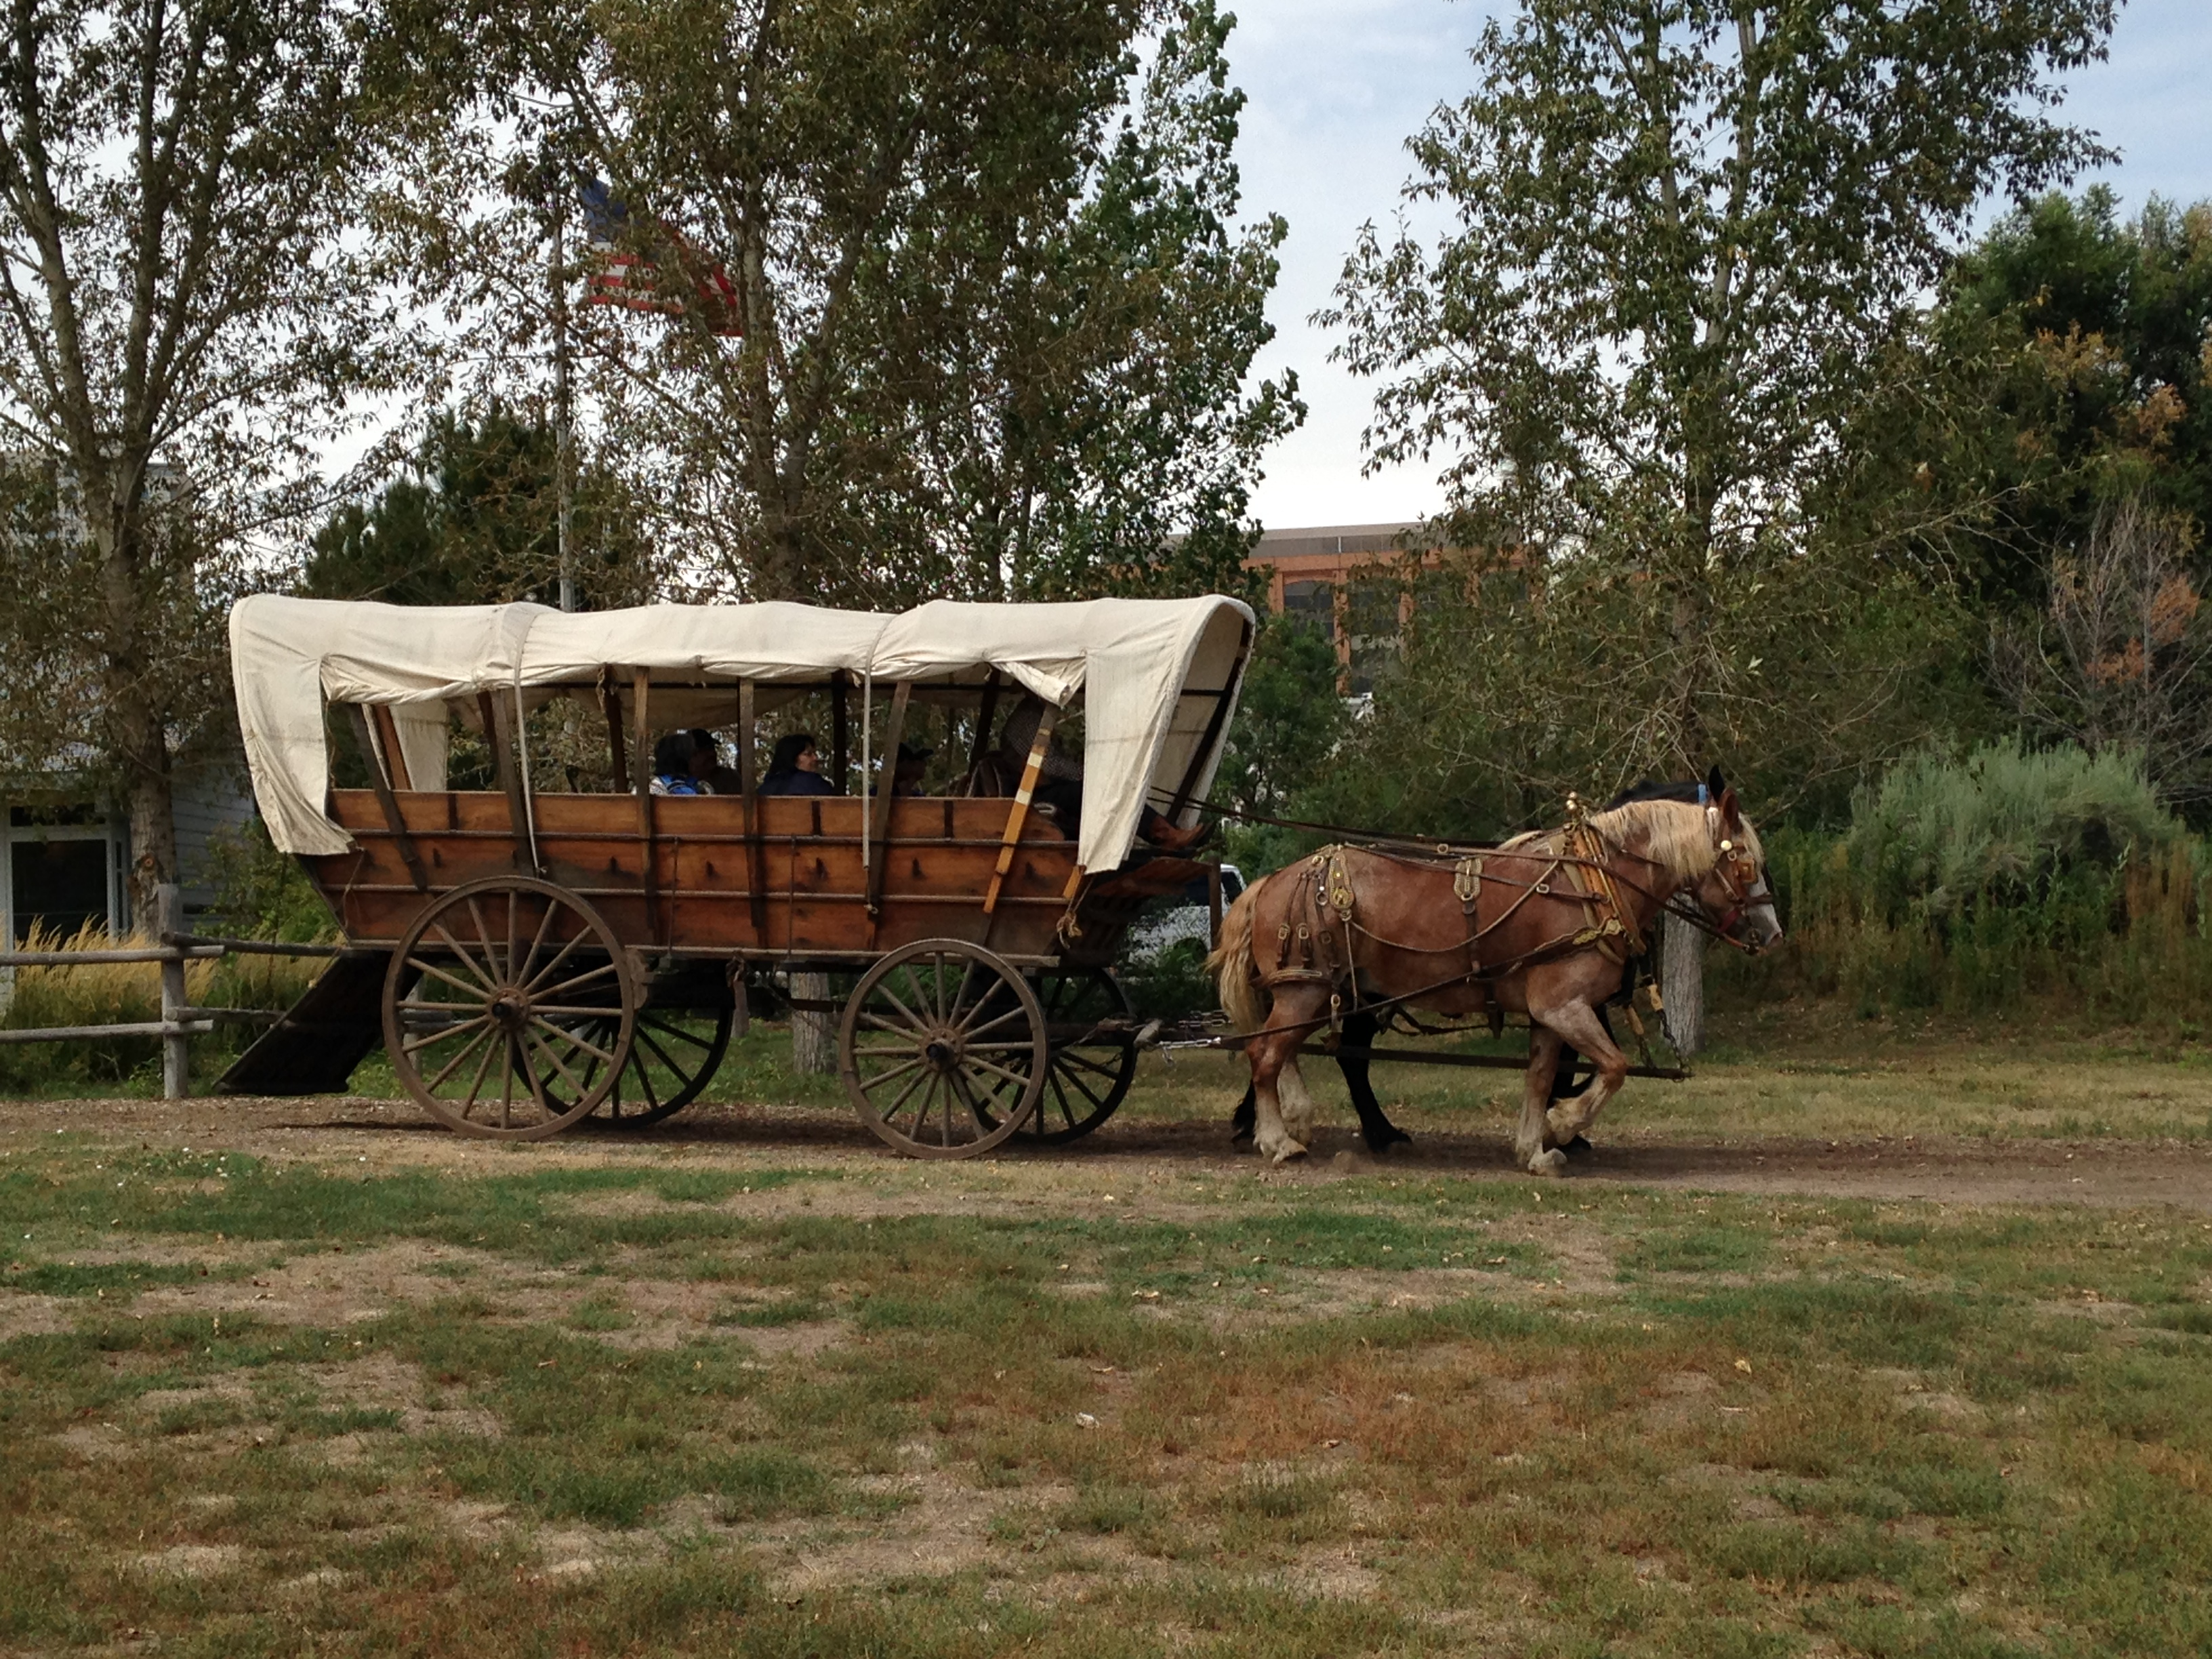 Two of Four Mile's old horses, Barney and Thomas, pulling the Prairie Schooner